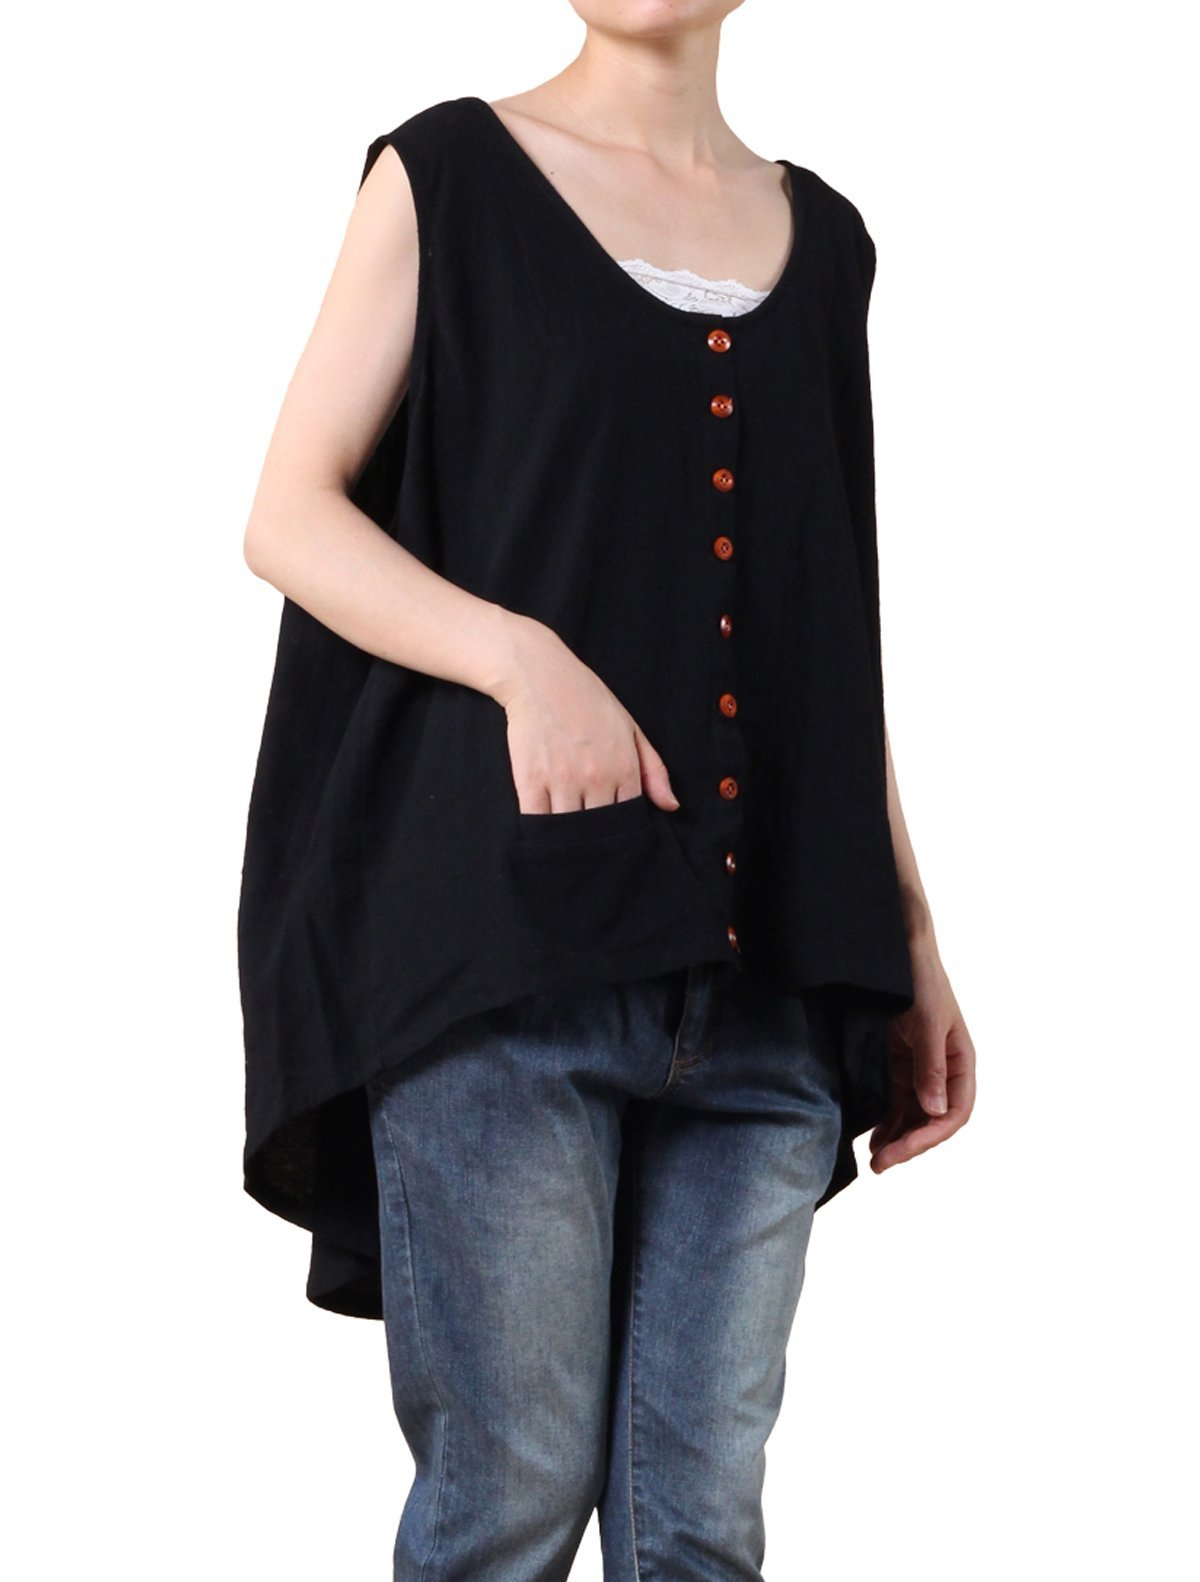 Mordenmiss Women's Sleeveless Hi-Low Vest Tops Lightweight Jacket with Pockets Style 1 L Black